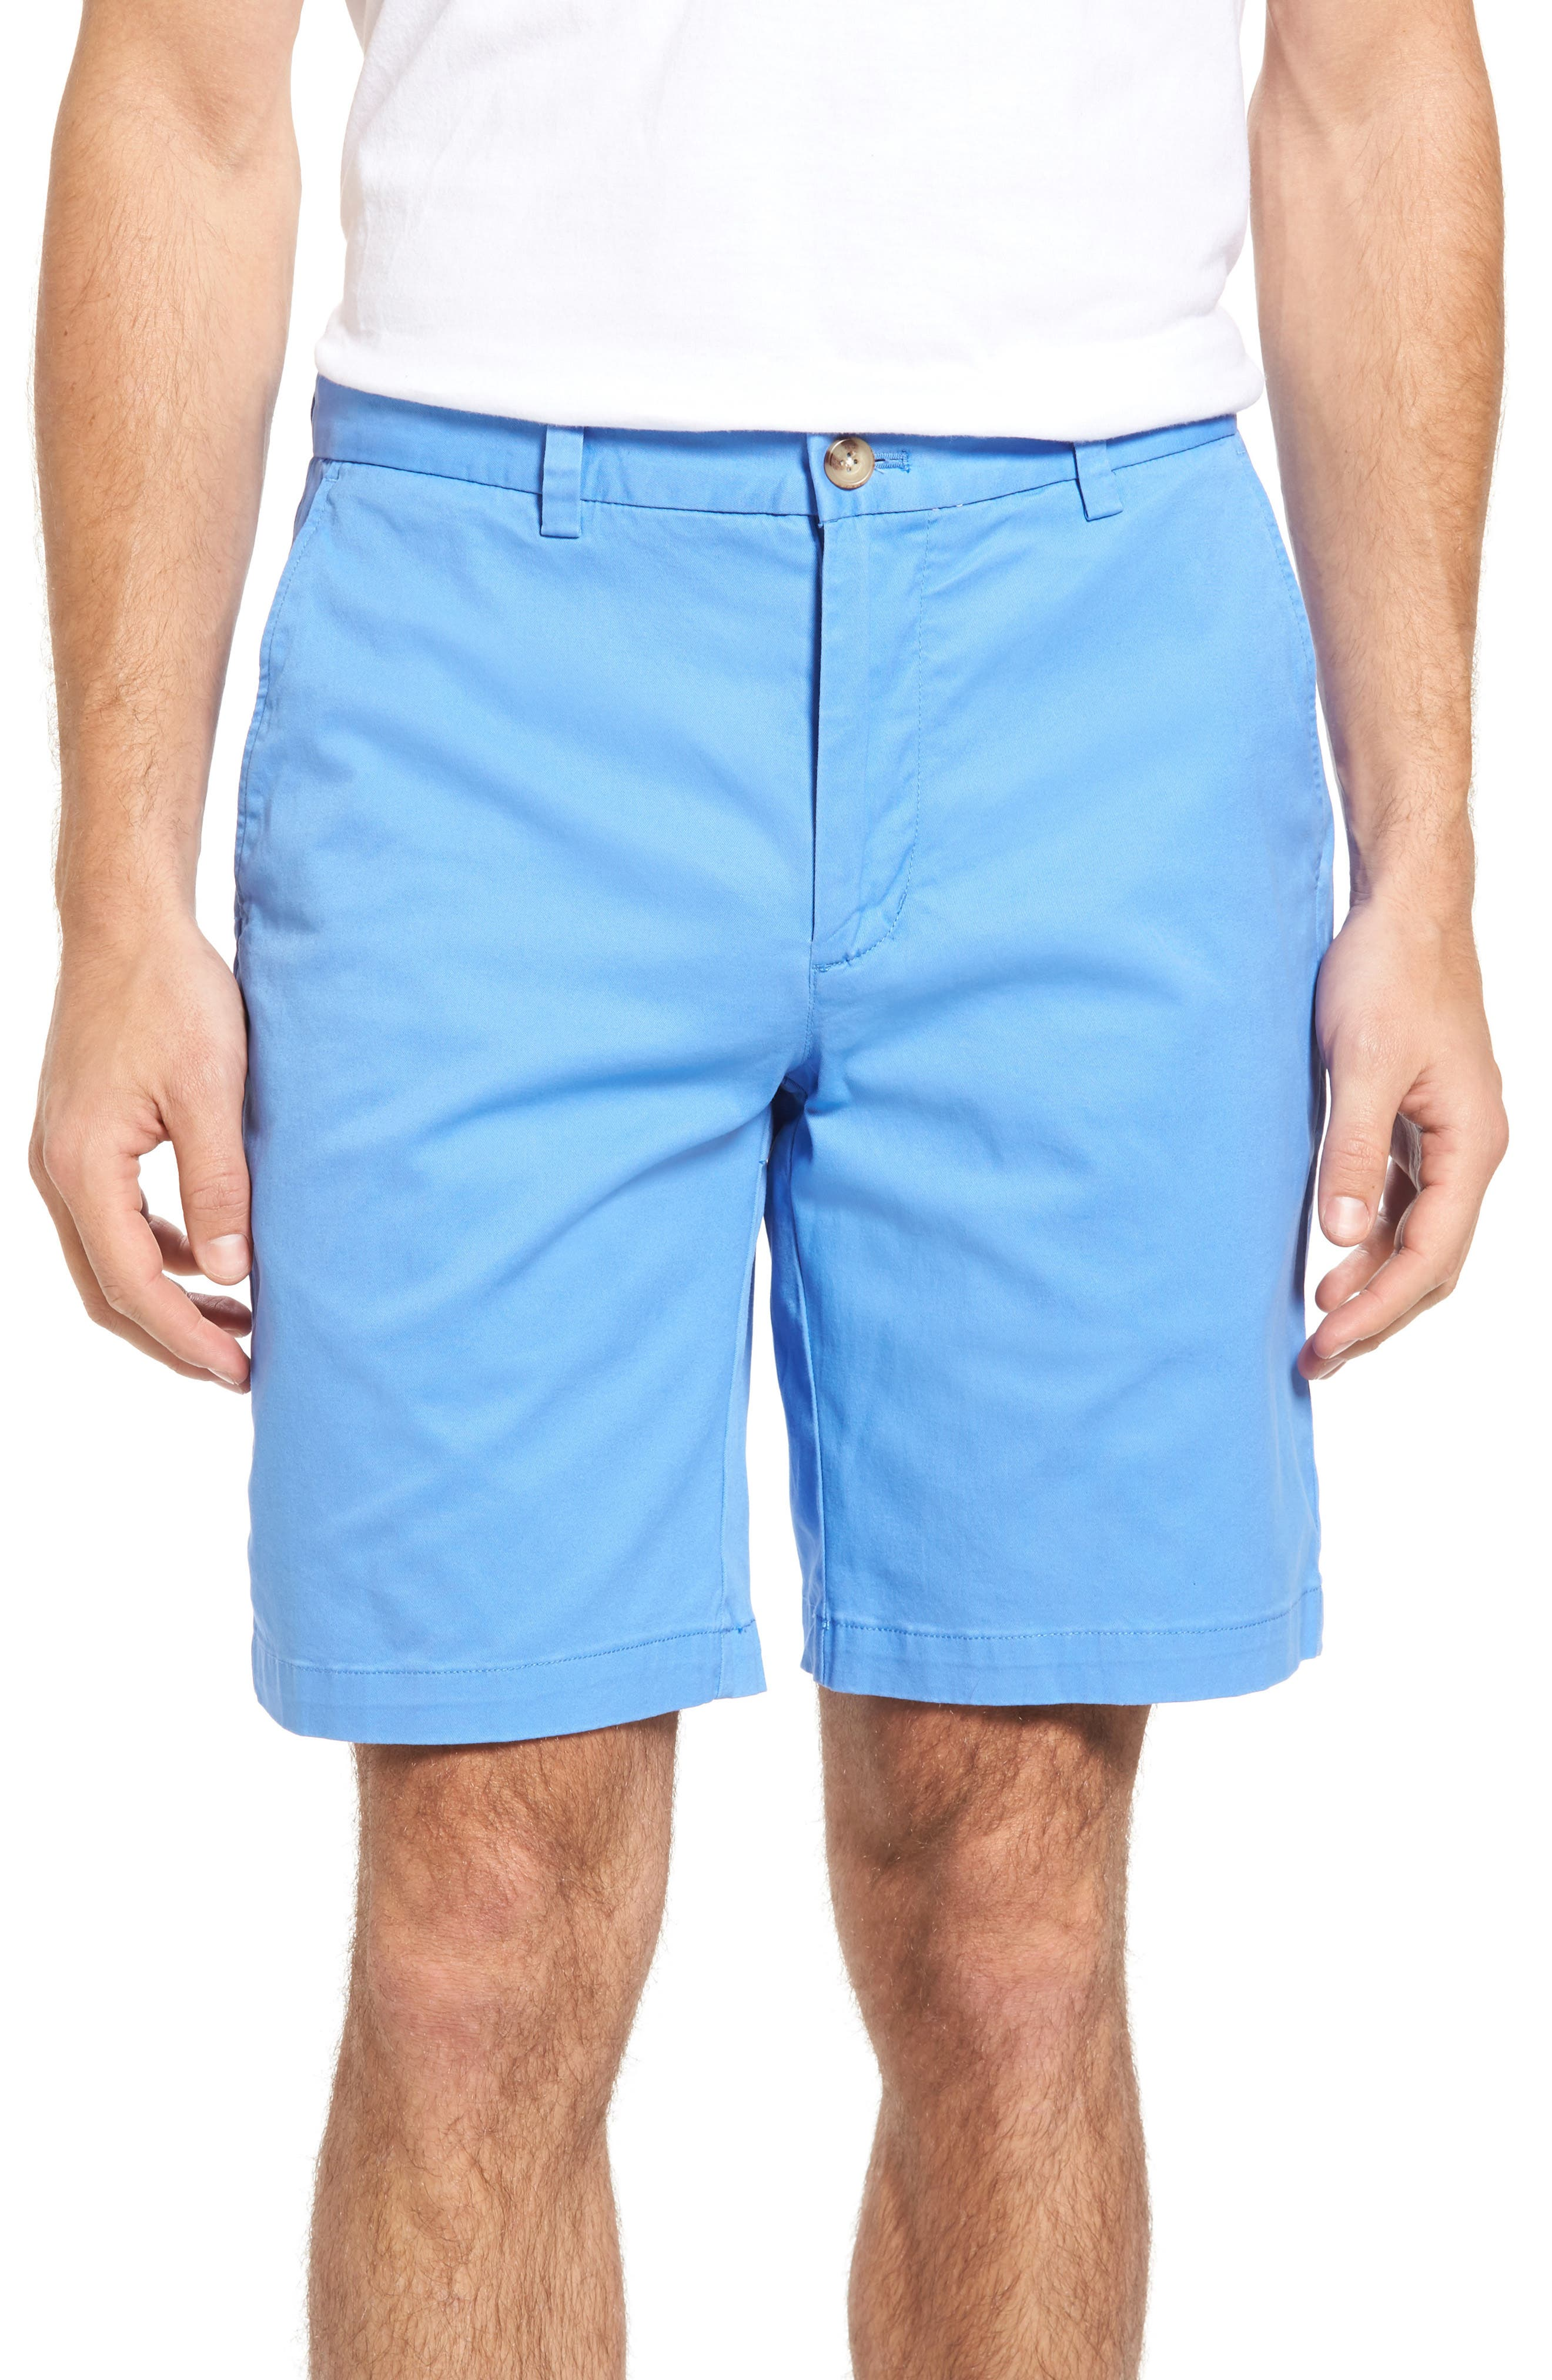 9 Inch Stretch Breaker Shorts,                             Main thumbnail 17, color,